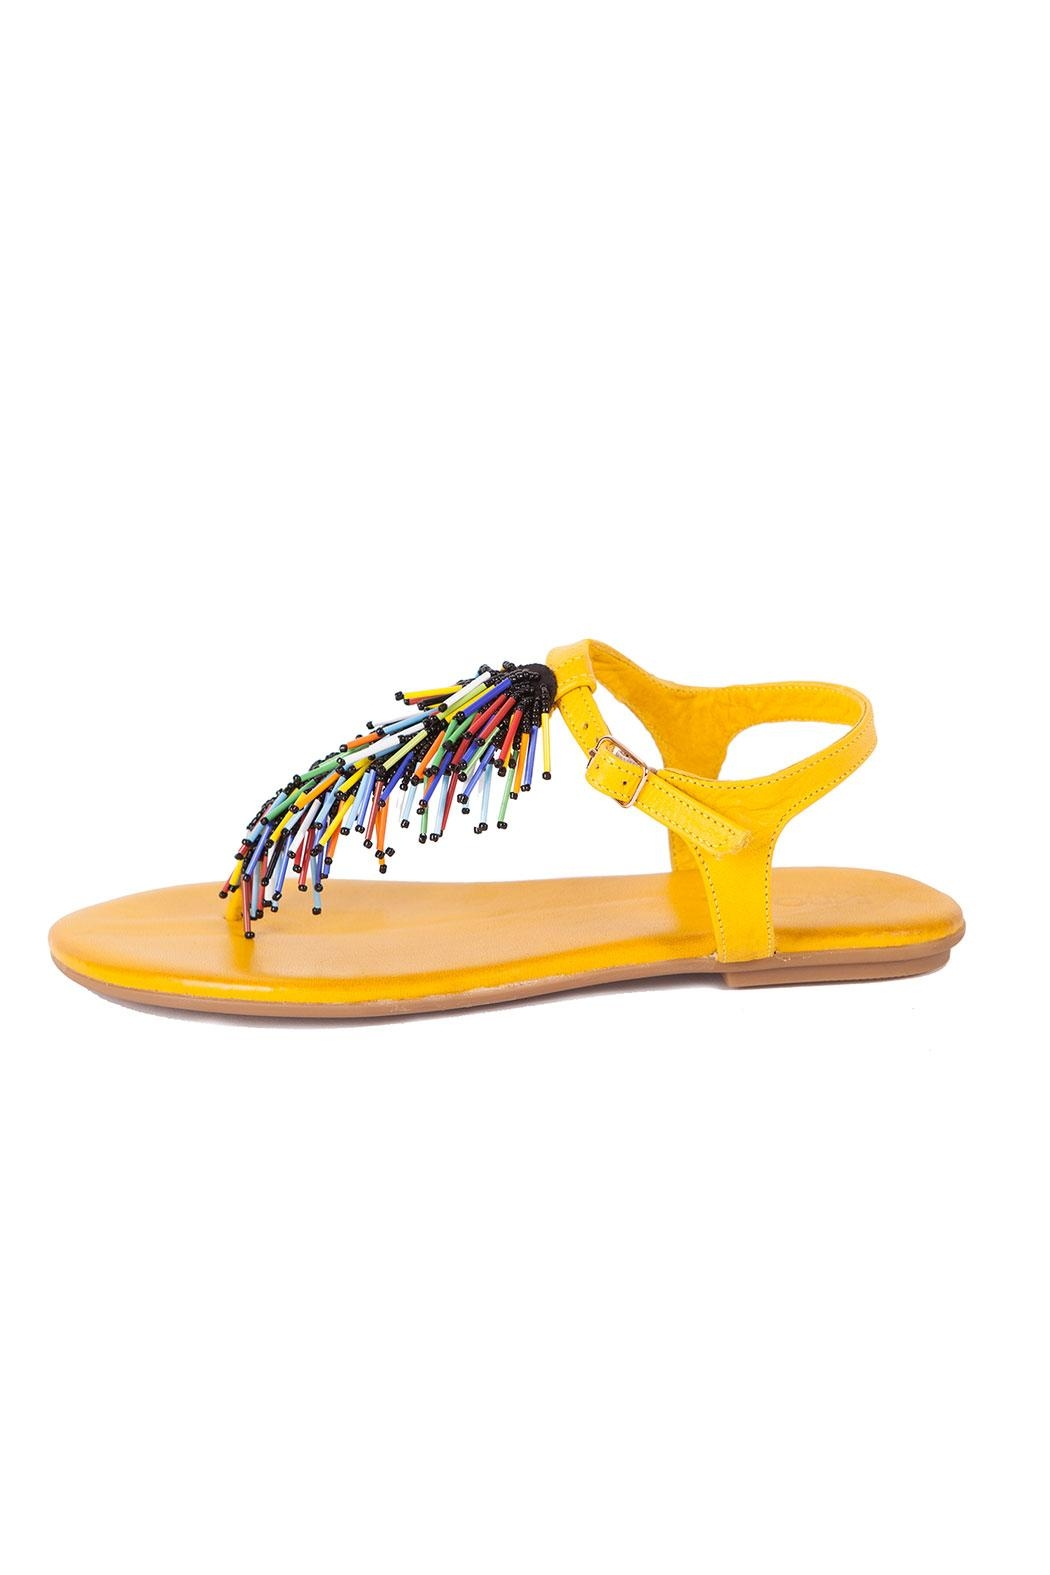 Inuovo Yellow Leather Sandals - Front Full Image